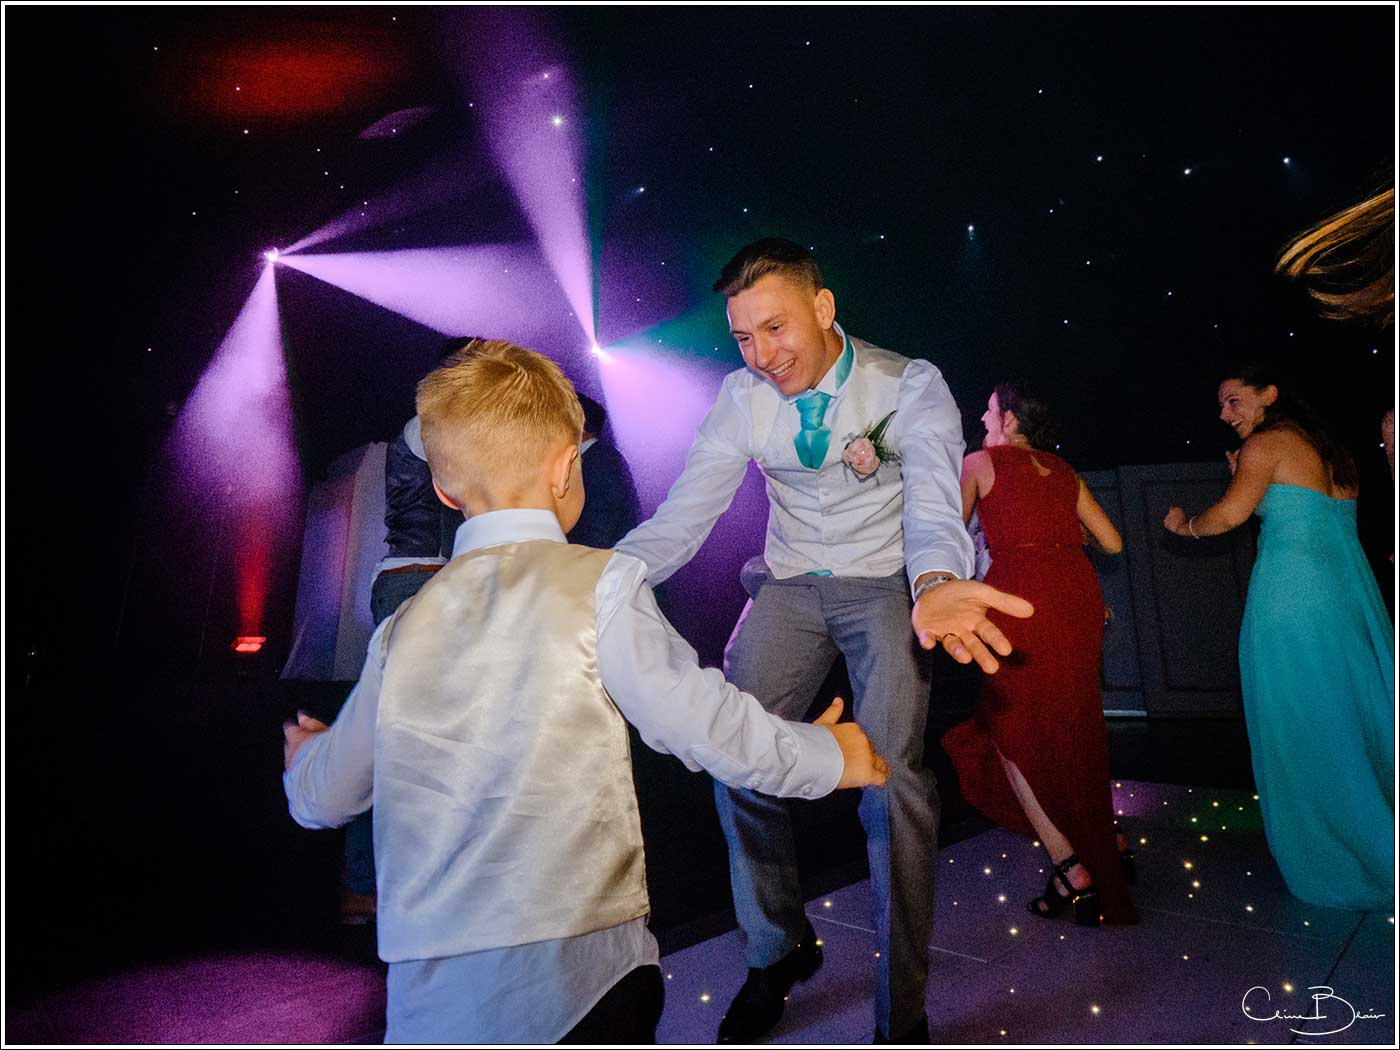 Coombe Abbey wedding photography showing groom dancing with a pageboy on the dance floor